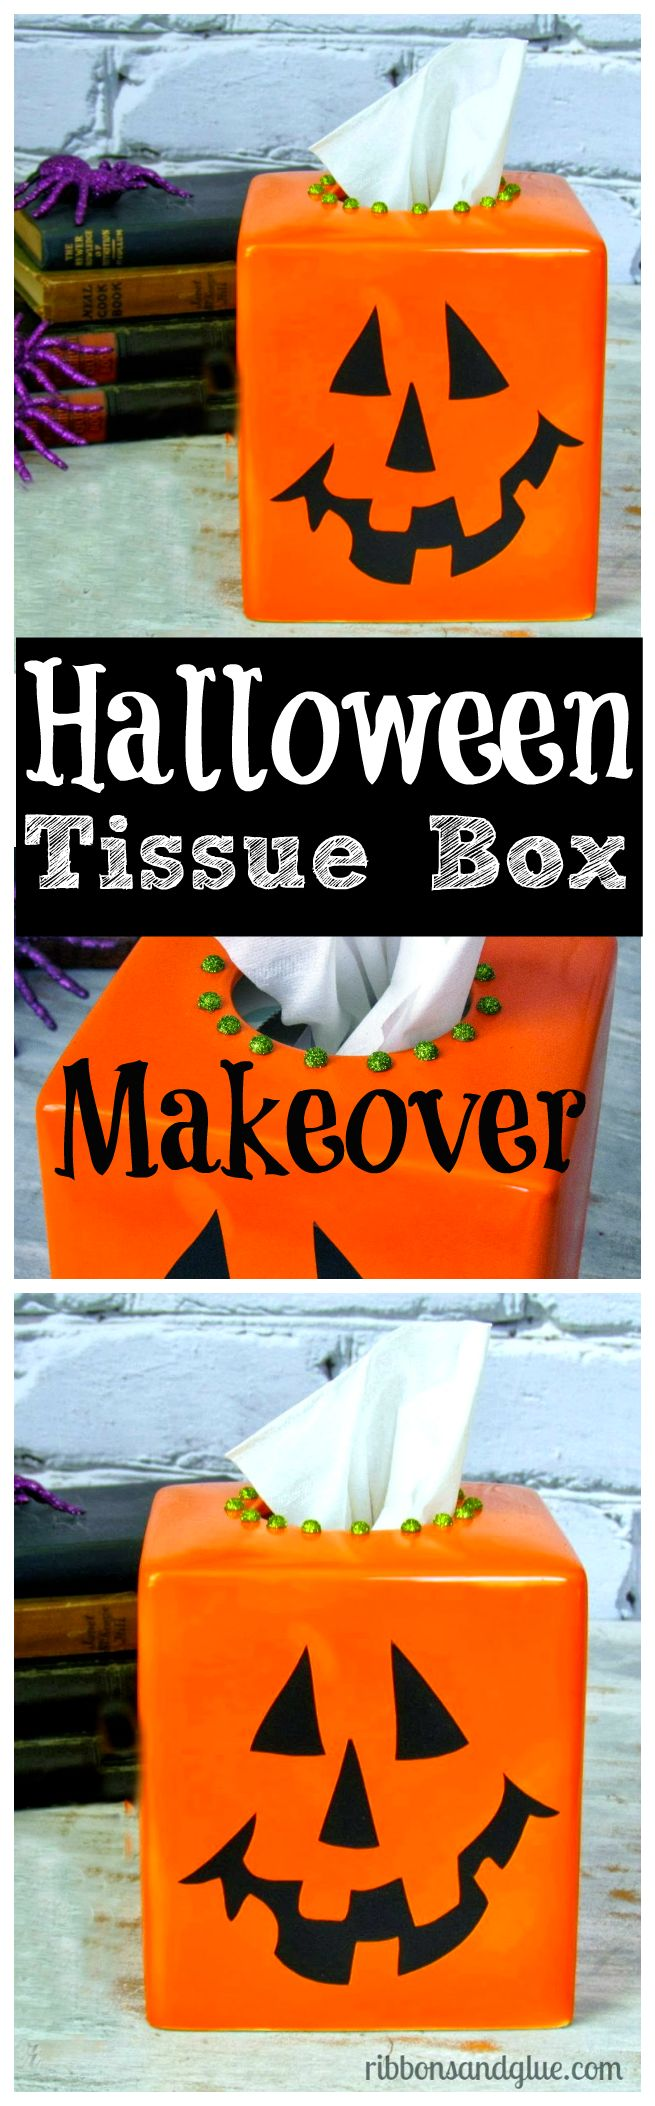 Give a plain ceramic tissue box cover a Halloween makeover with just spray paint and black vinyl . Easy Halloween decoration idea.